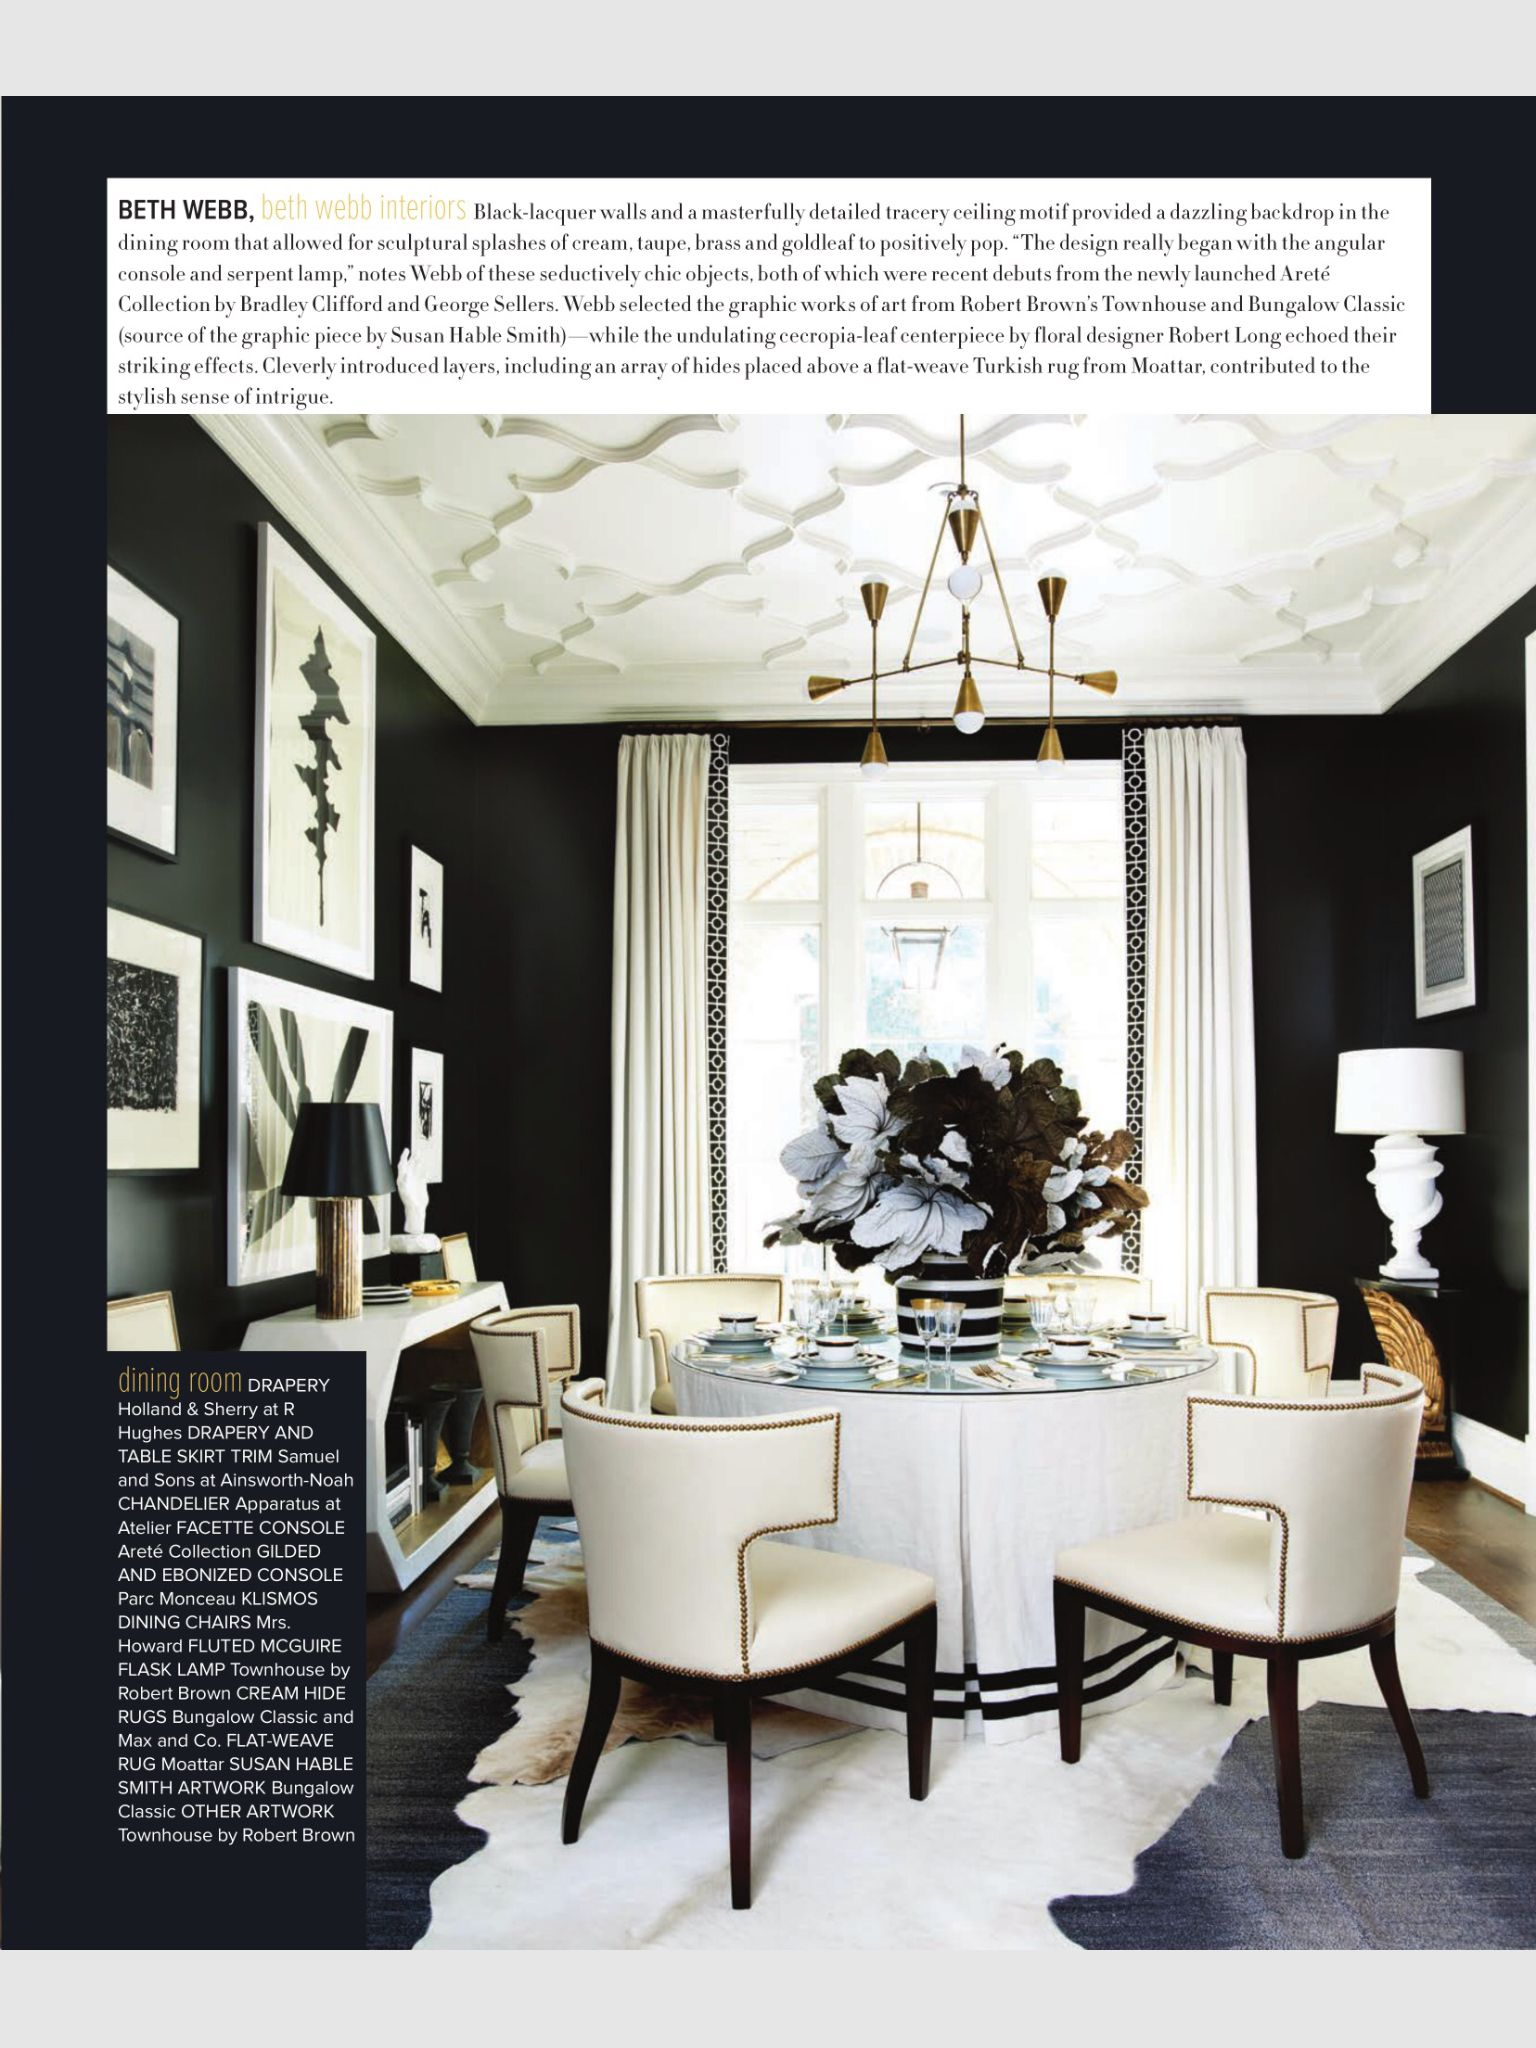 Black Lacquer Walls And A Masterfully Detailed Tracery Ceiling Motif Provided Dazzling Backdrop In The Dining Room That Allowed For Sculptural Splashes Of